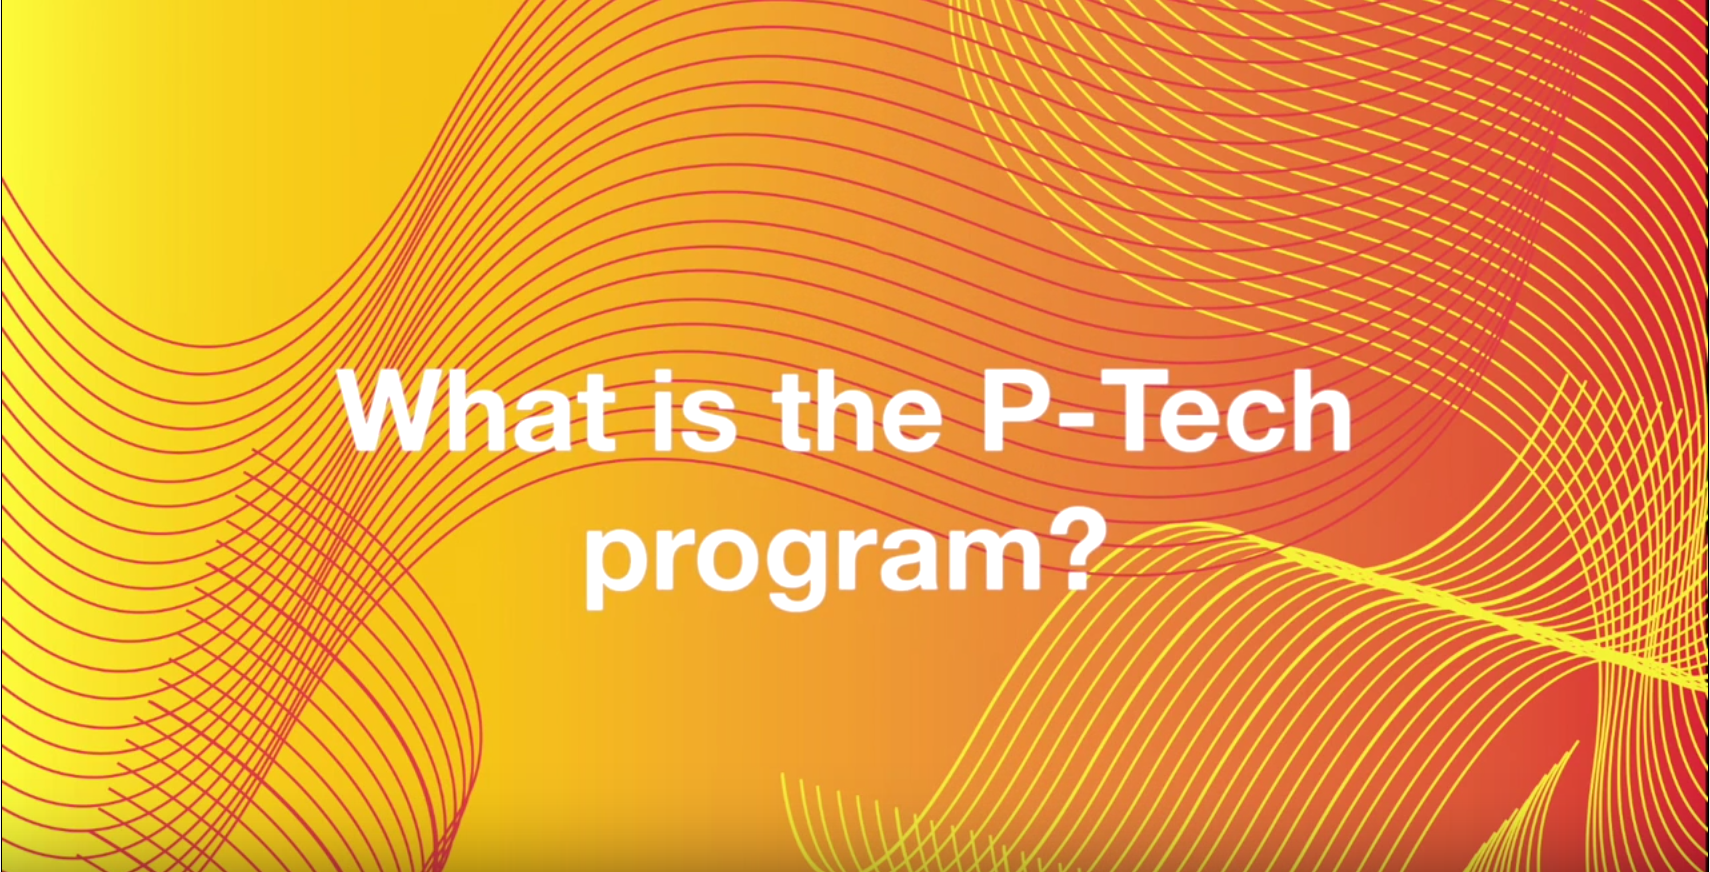 What is the P-Tech program?